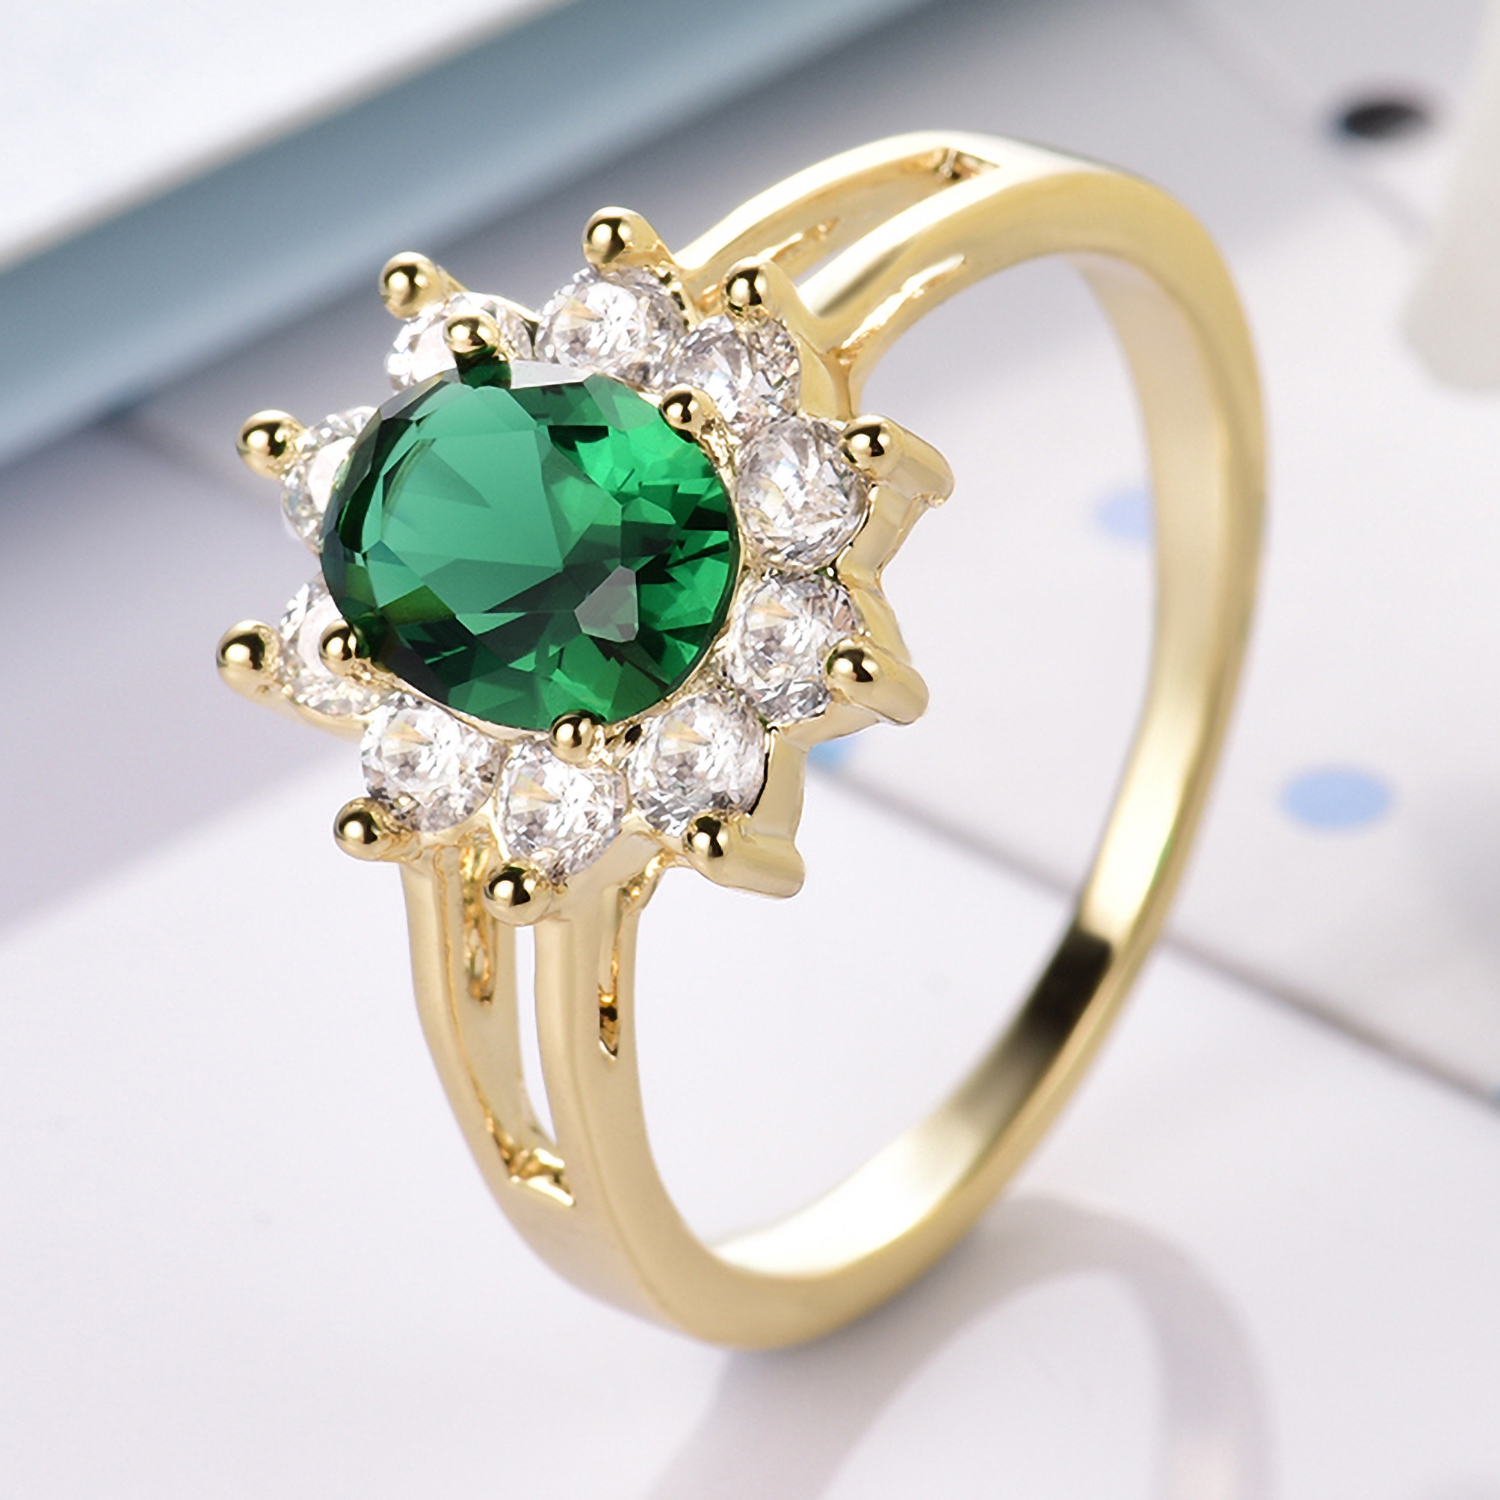 Lady/'s Size 6 Green Emerald Crystal Wedding Ring Women/'s 18Kt Yellow Gold Filled